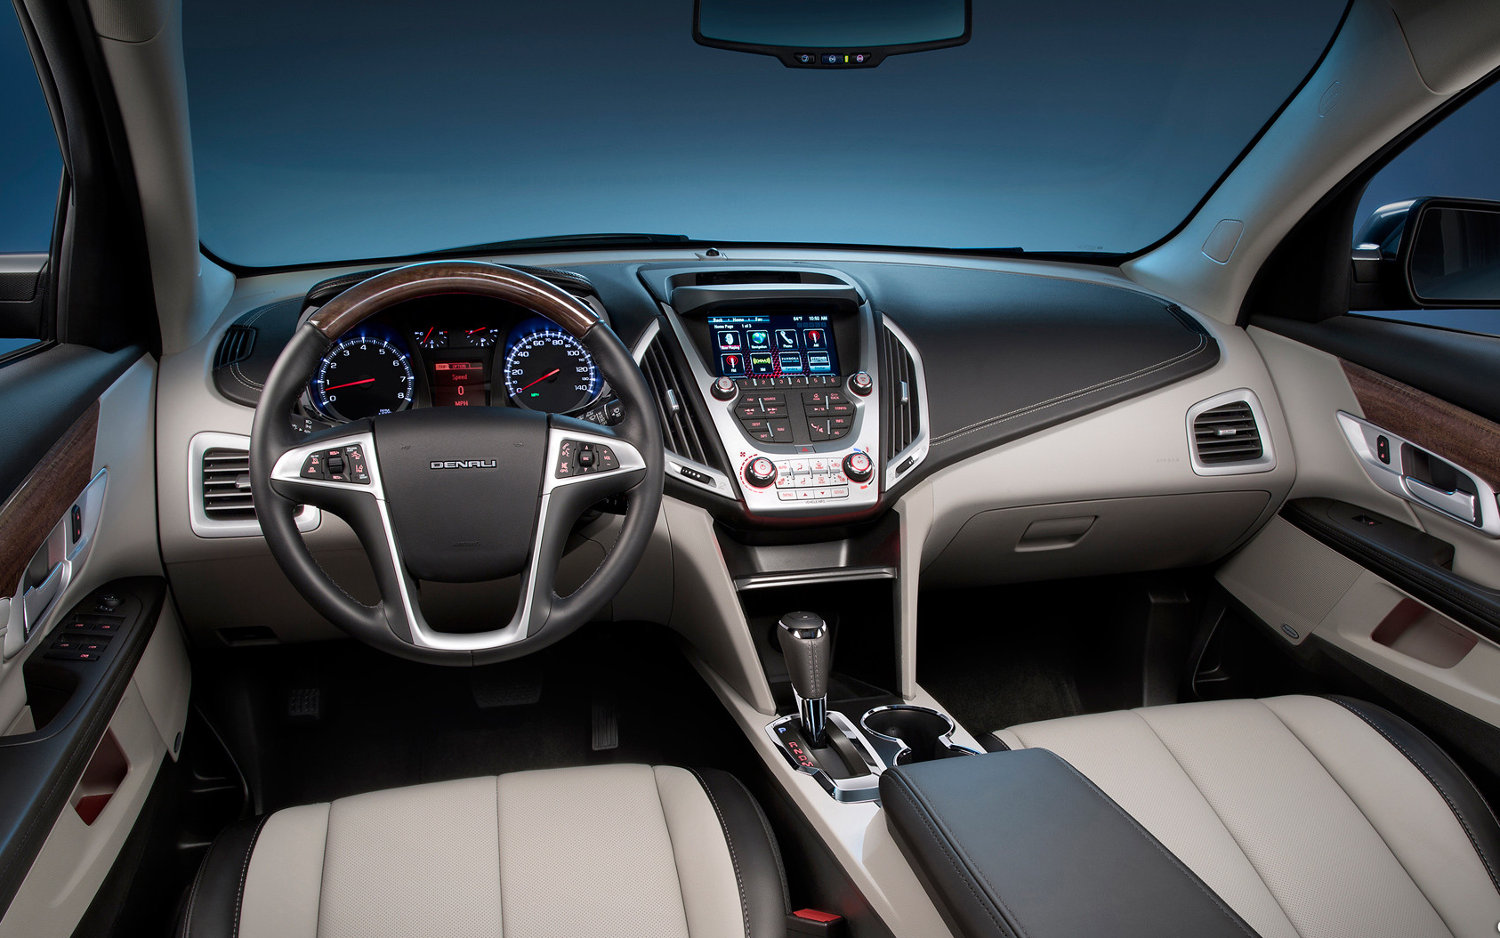 2017 Gmc Terrain Interior | Billingsblessingbags.org